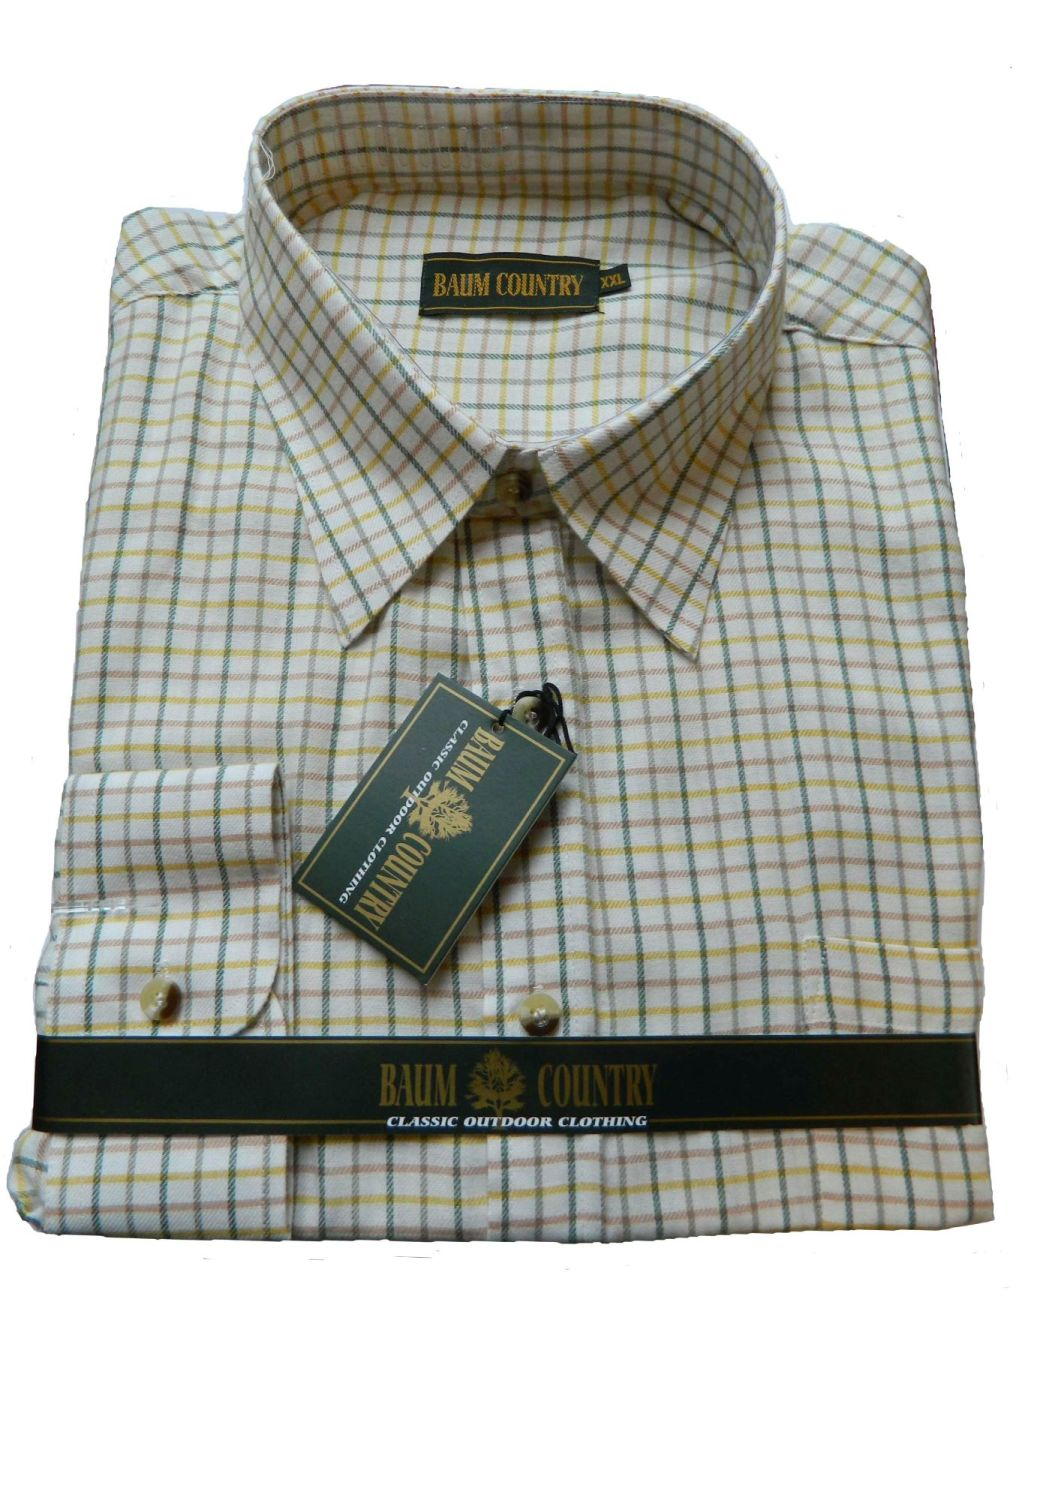 Baum Country Green and Cream check shirt